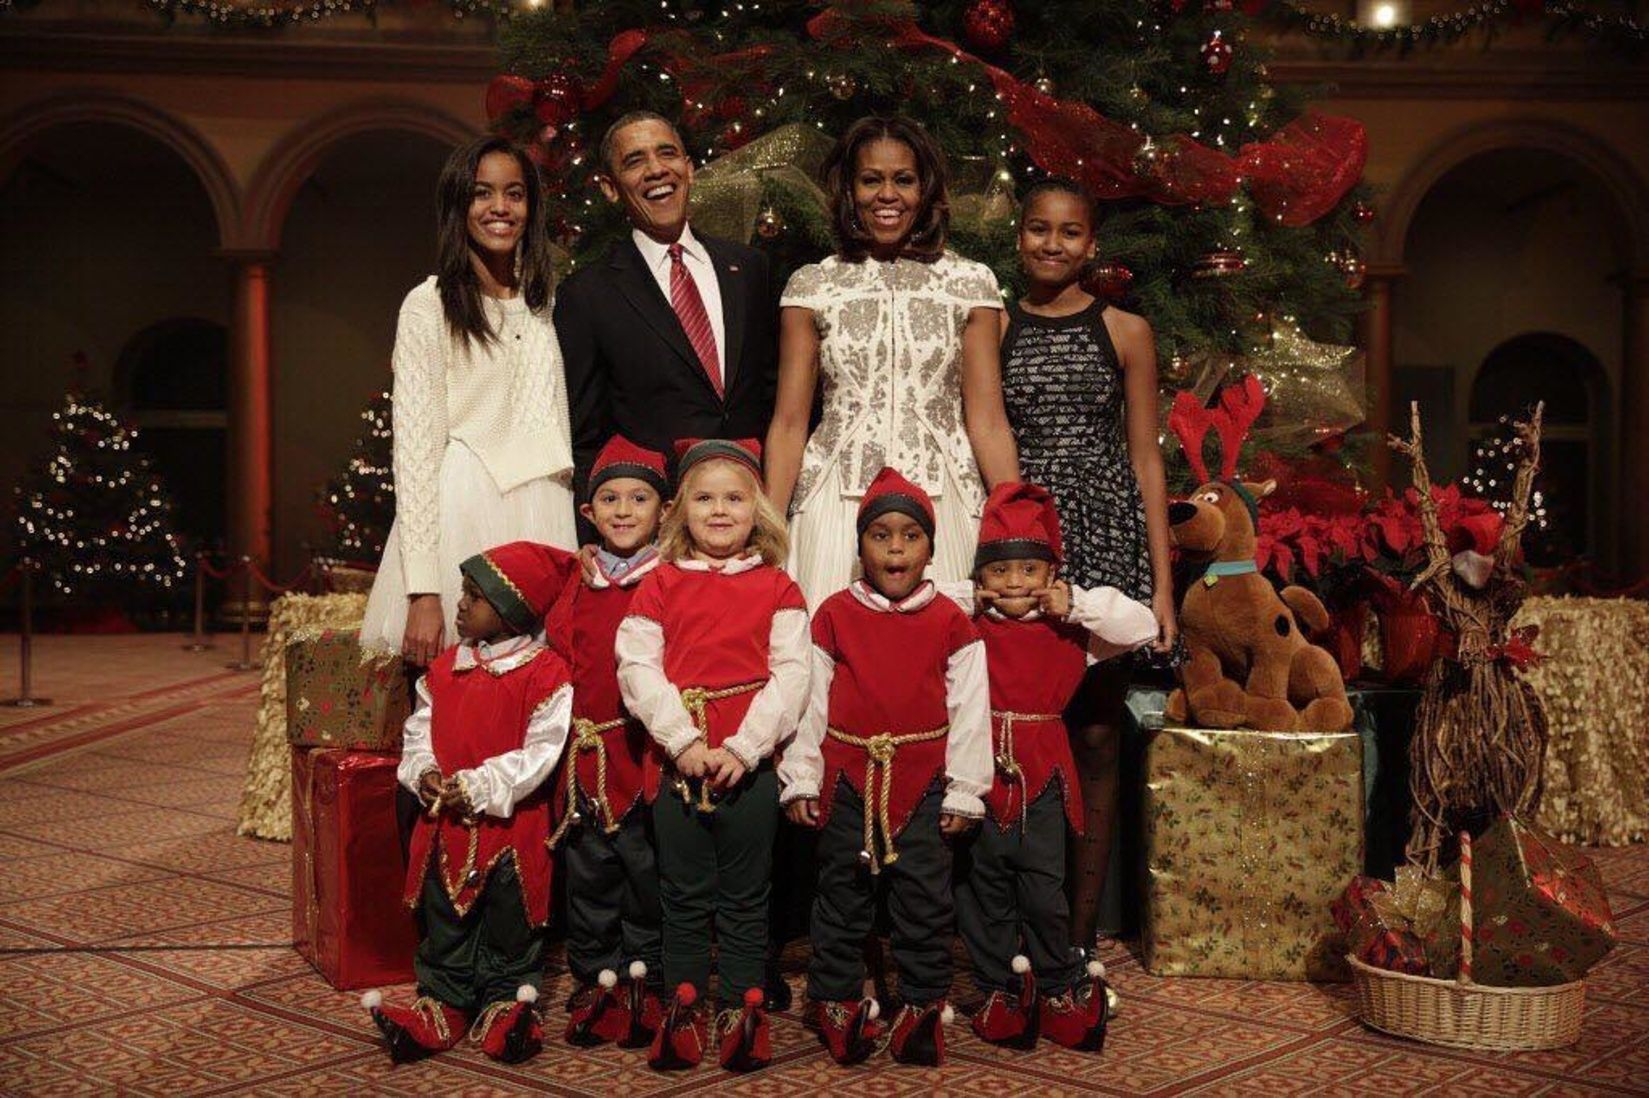 HappeningNow On #NITM: Official Christmas portrait from Family Obama ...